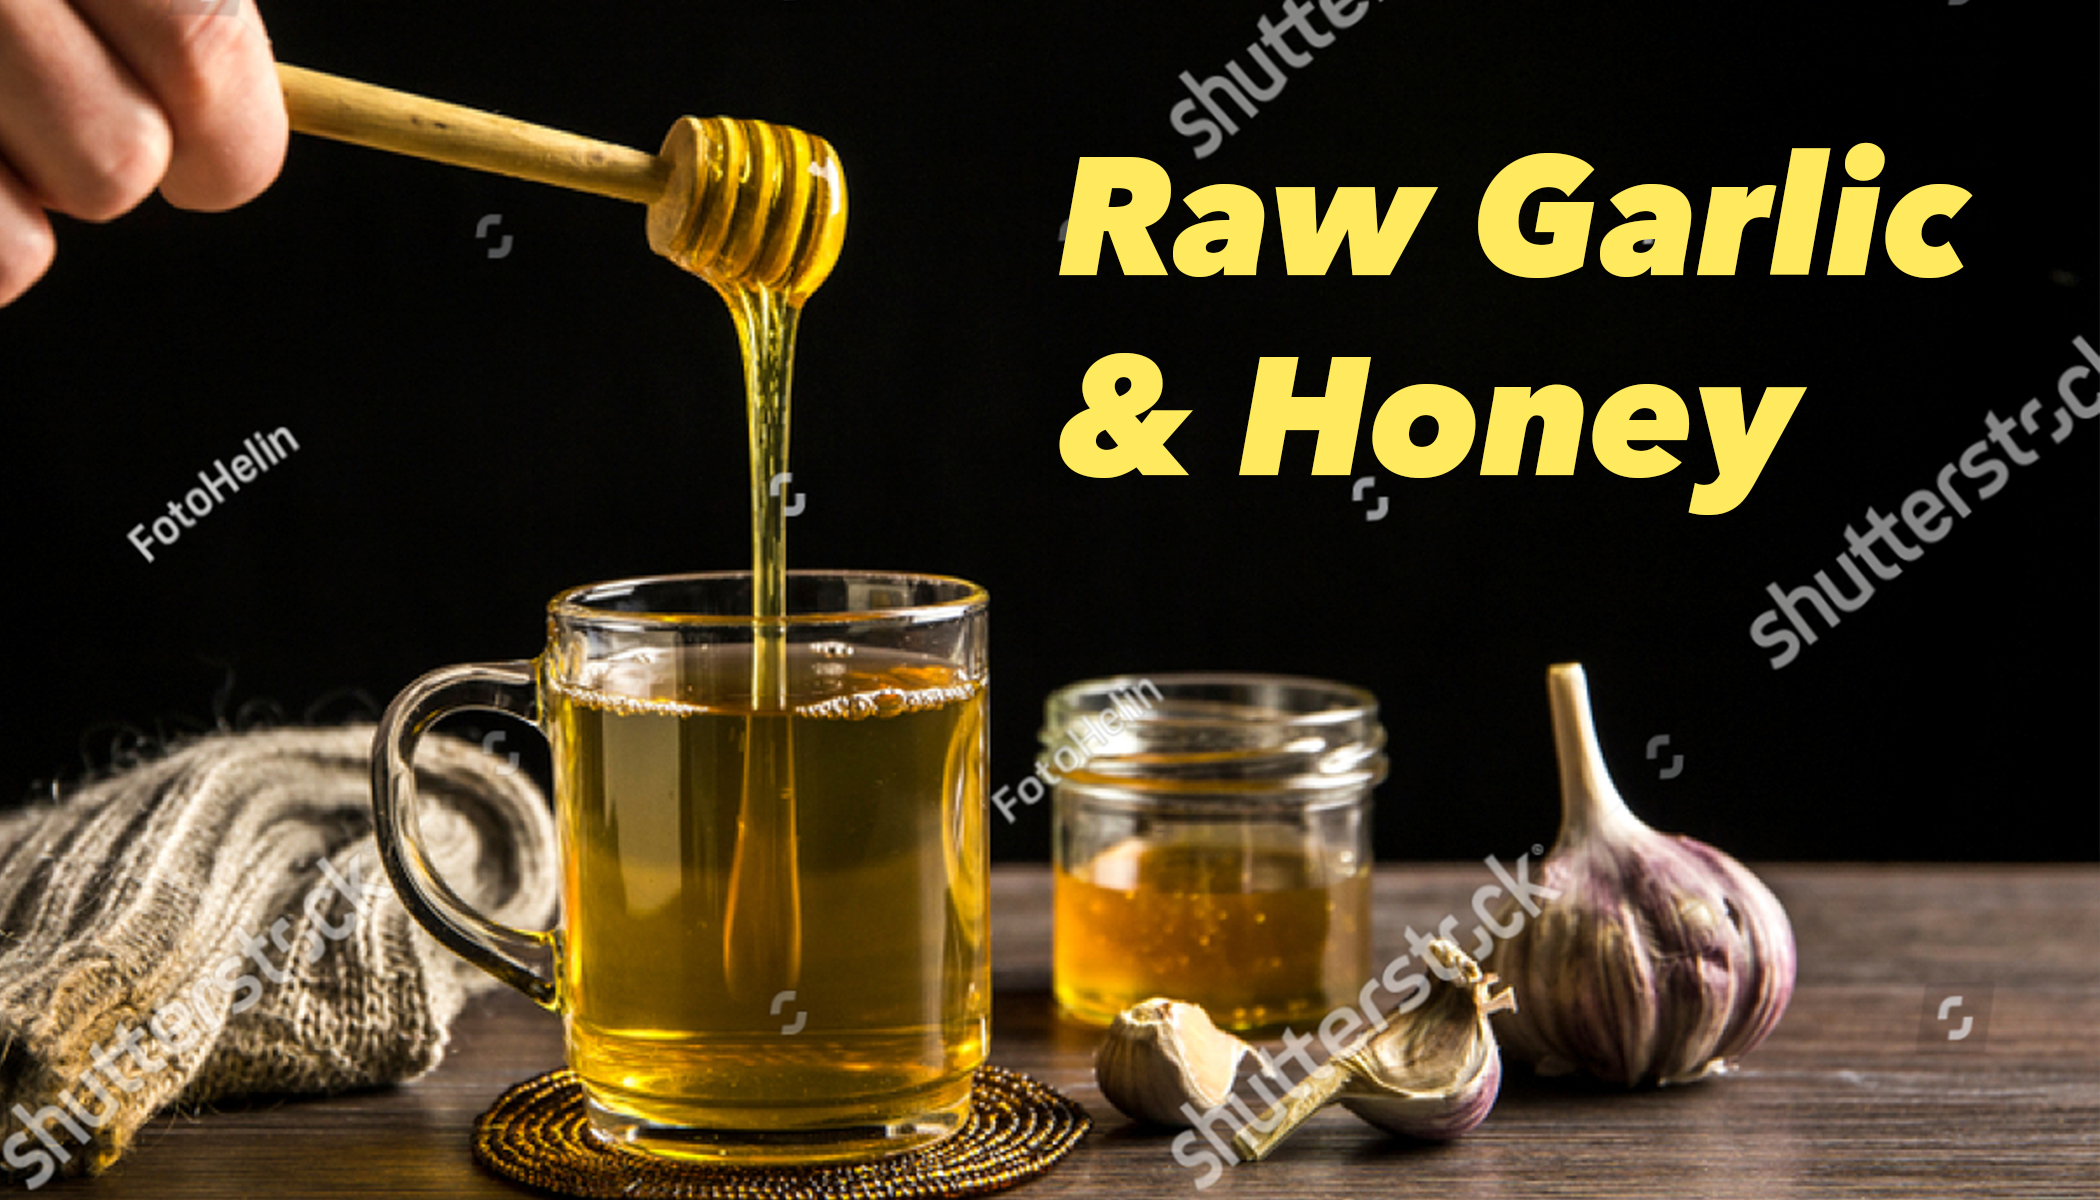 Raw Garlic and Honey Is Good for Your Health and Body